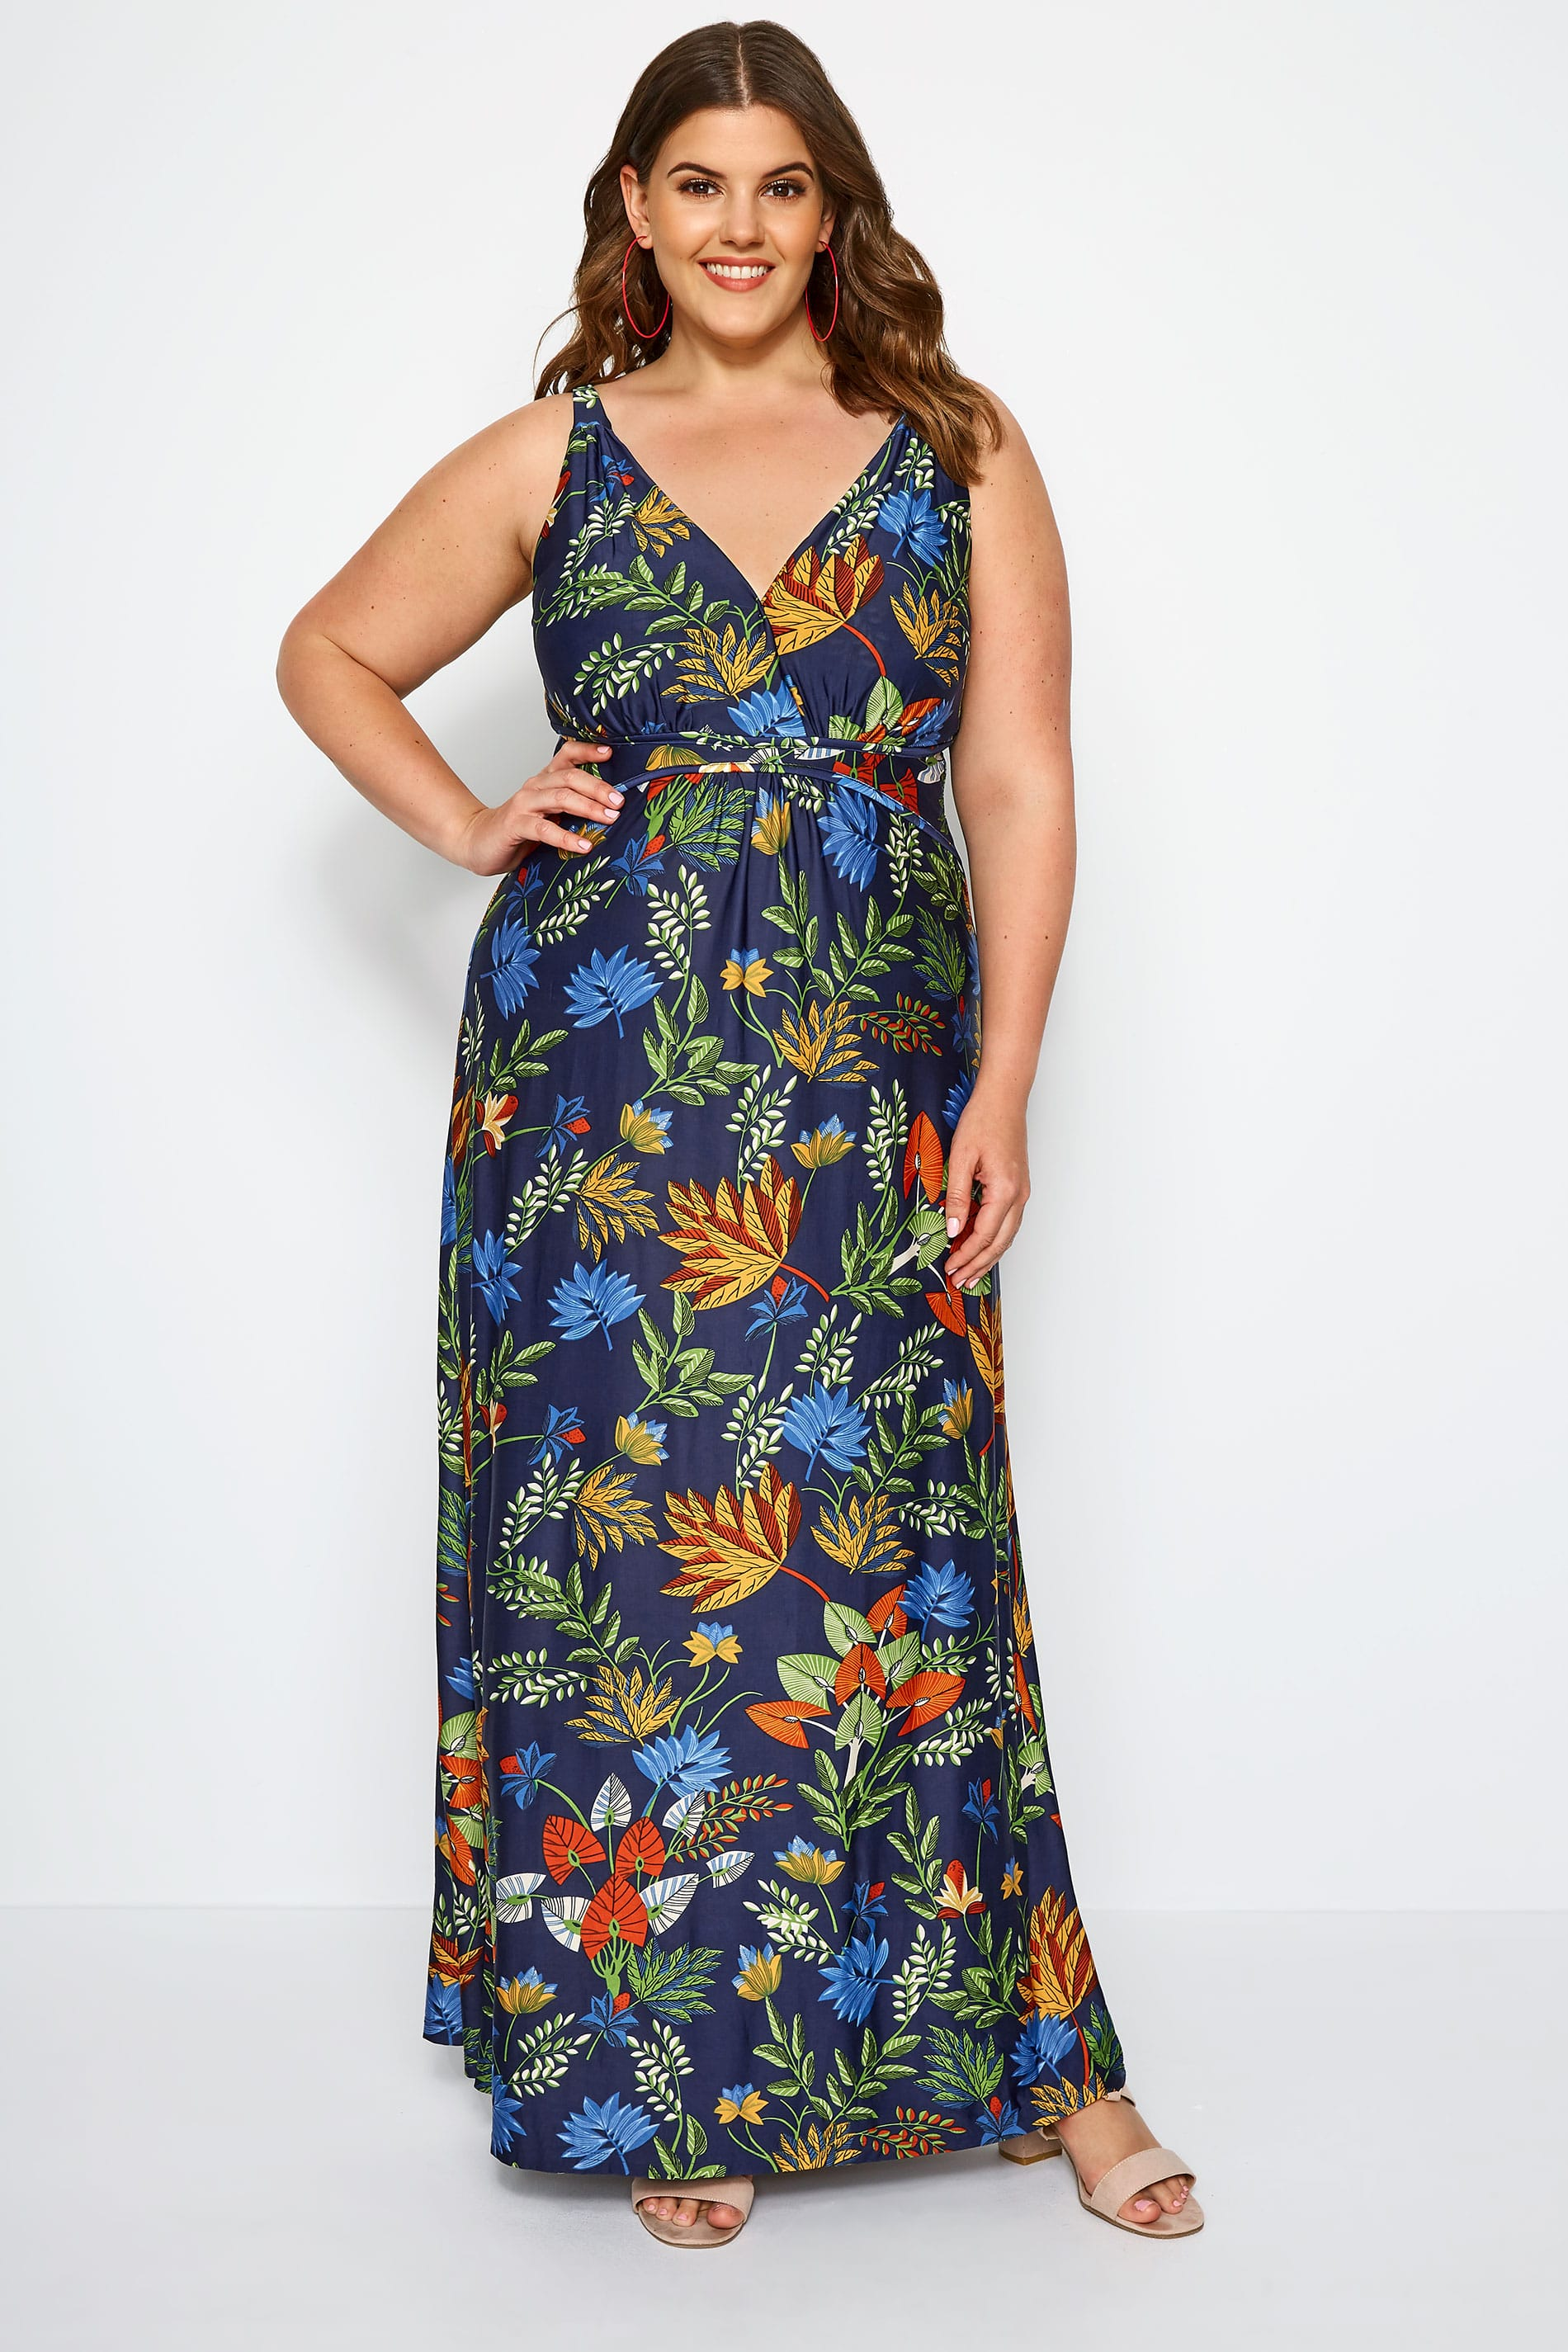 Yours navy and green tropical dress